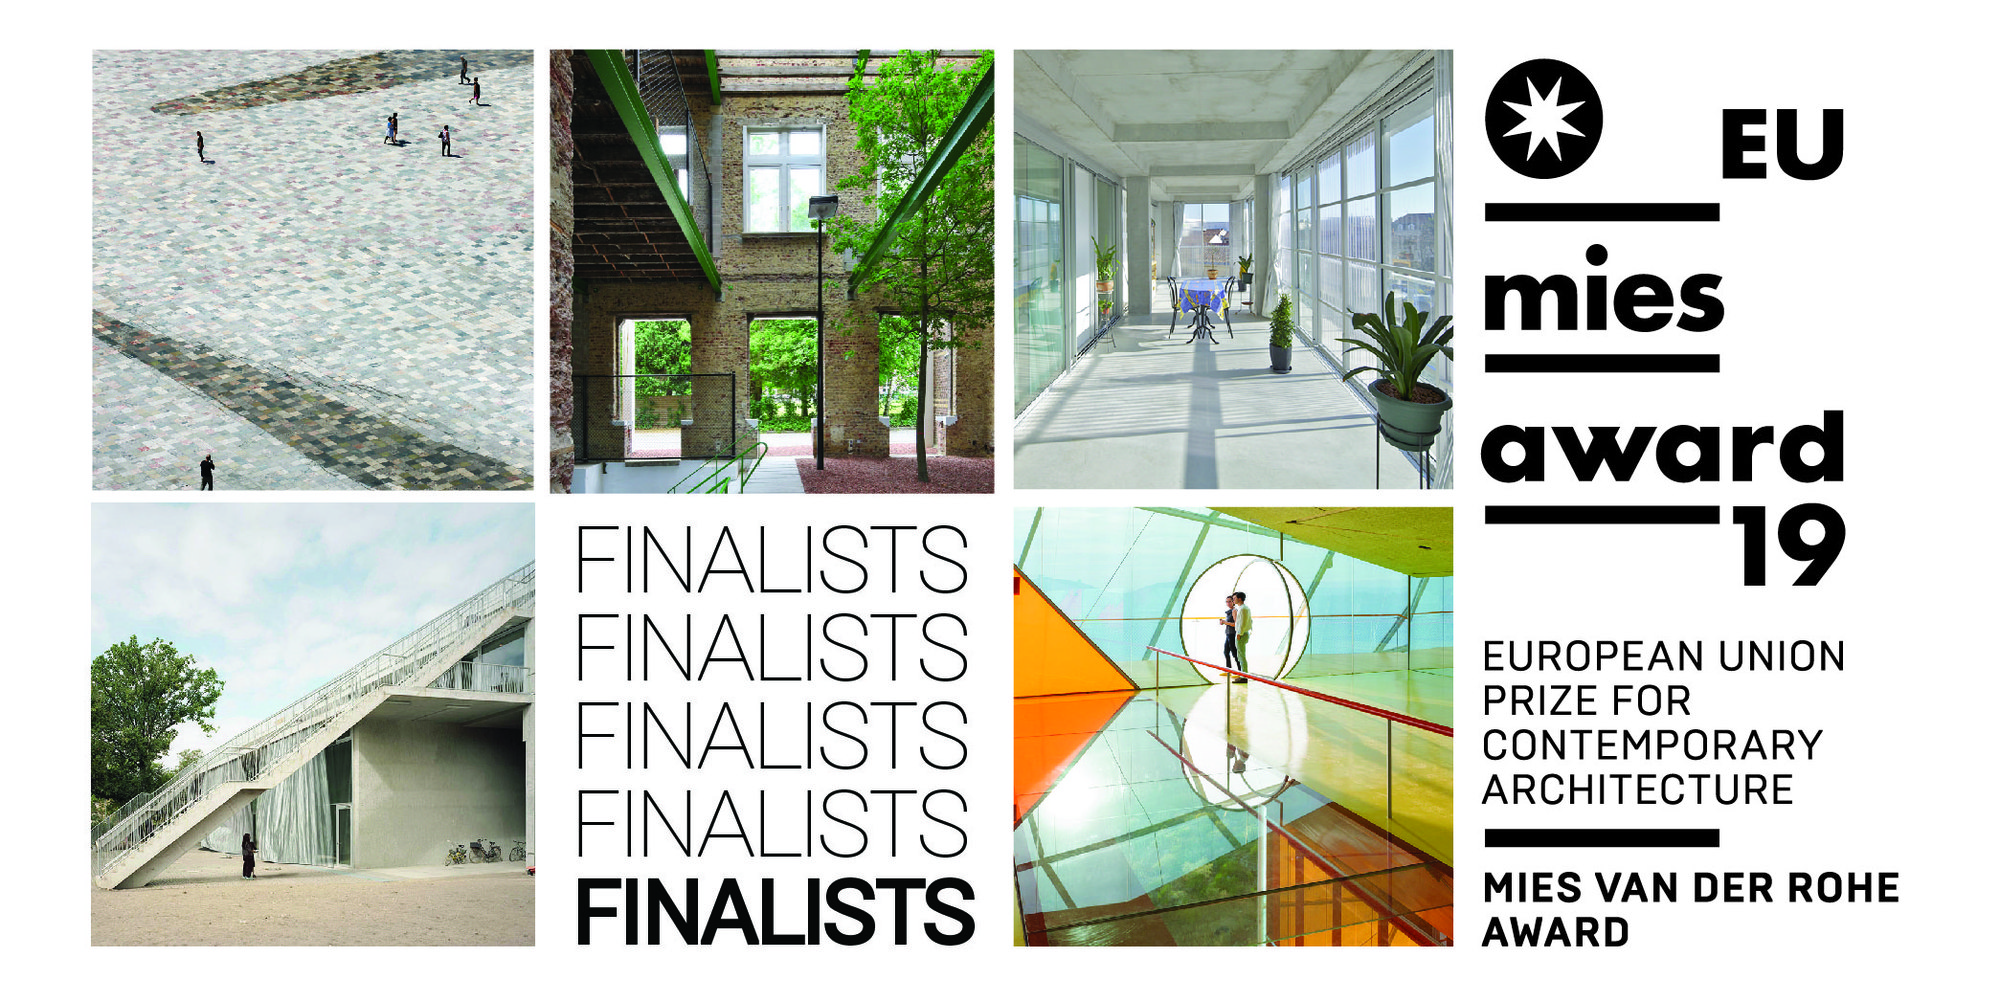 5 Projects Shortlisted for 2019 EU Mies Prize for Contemporary Architecture  | ArchDaily